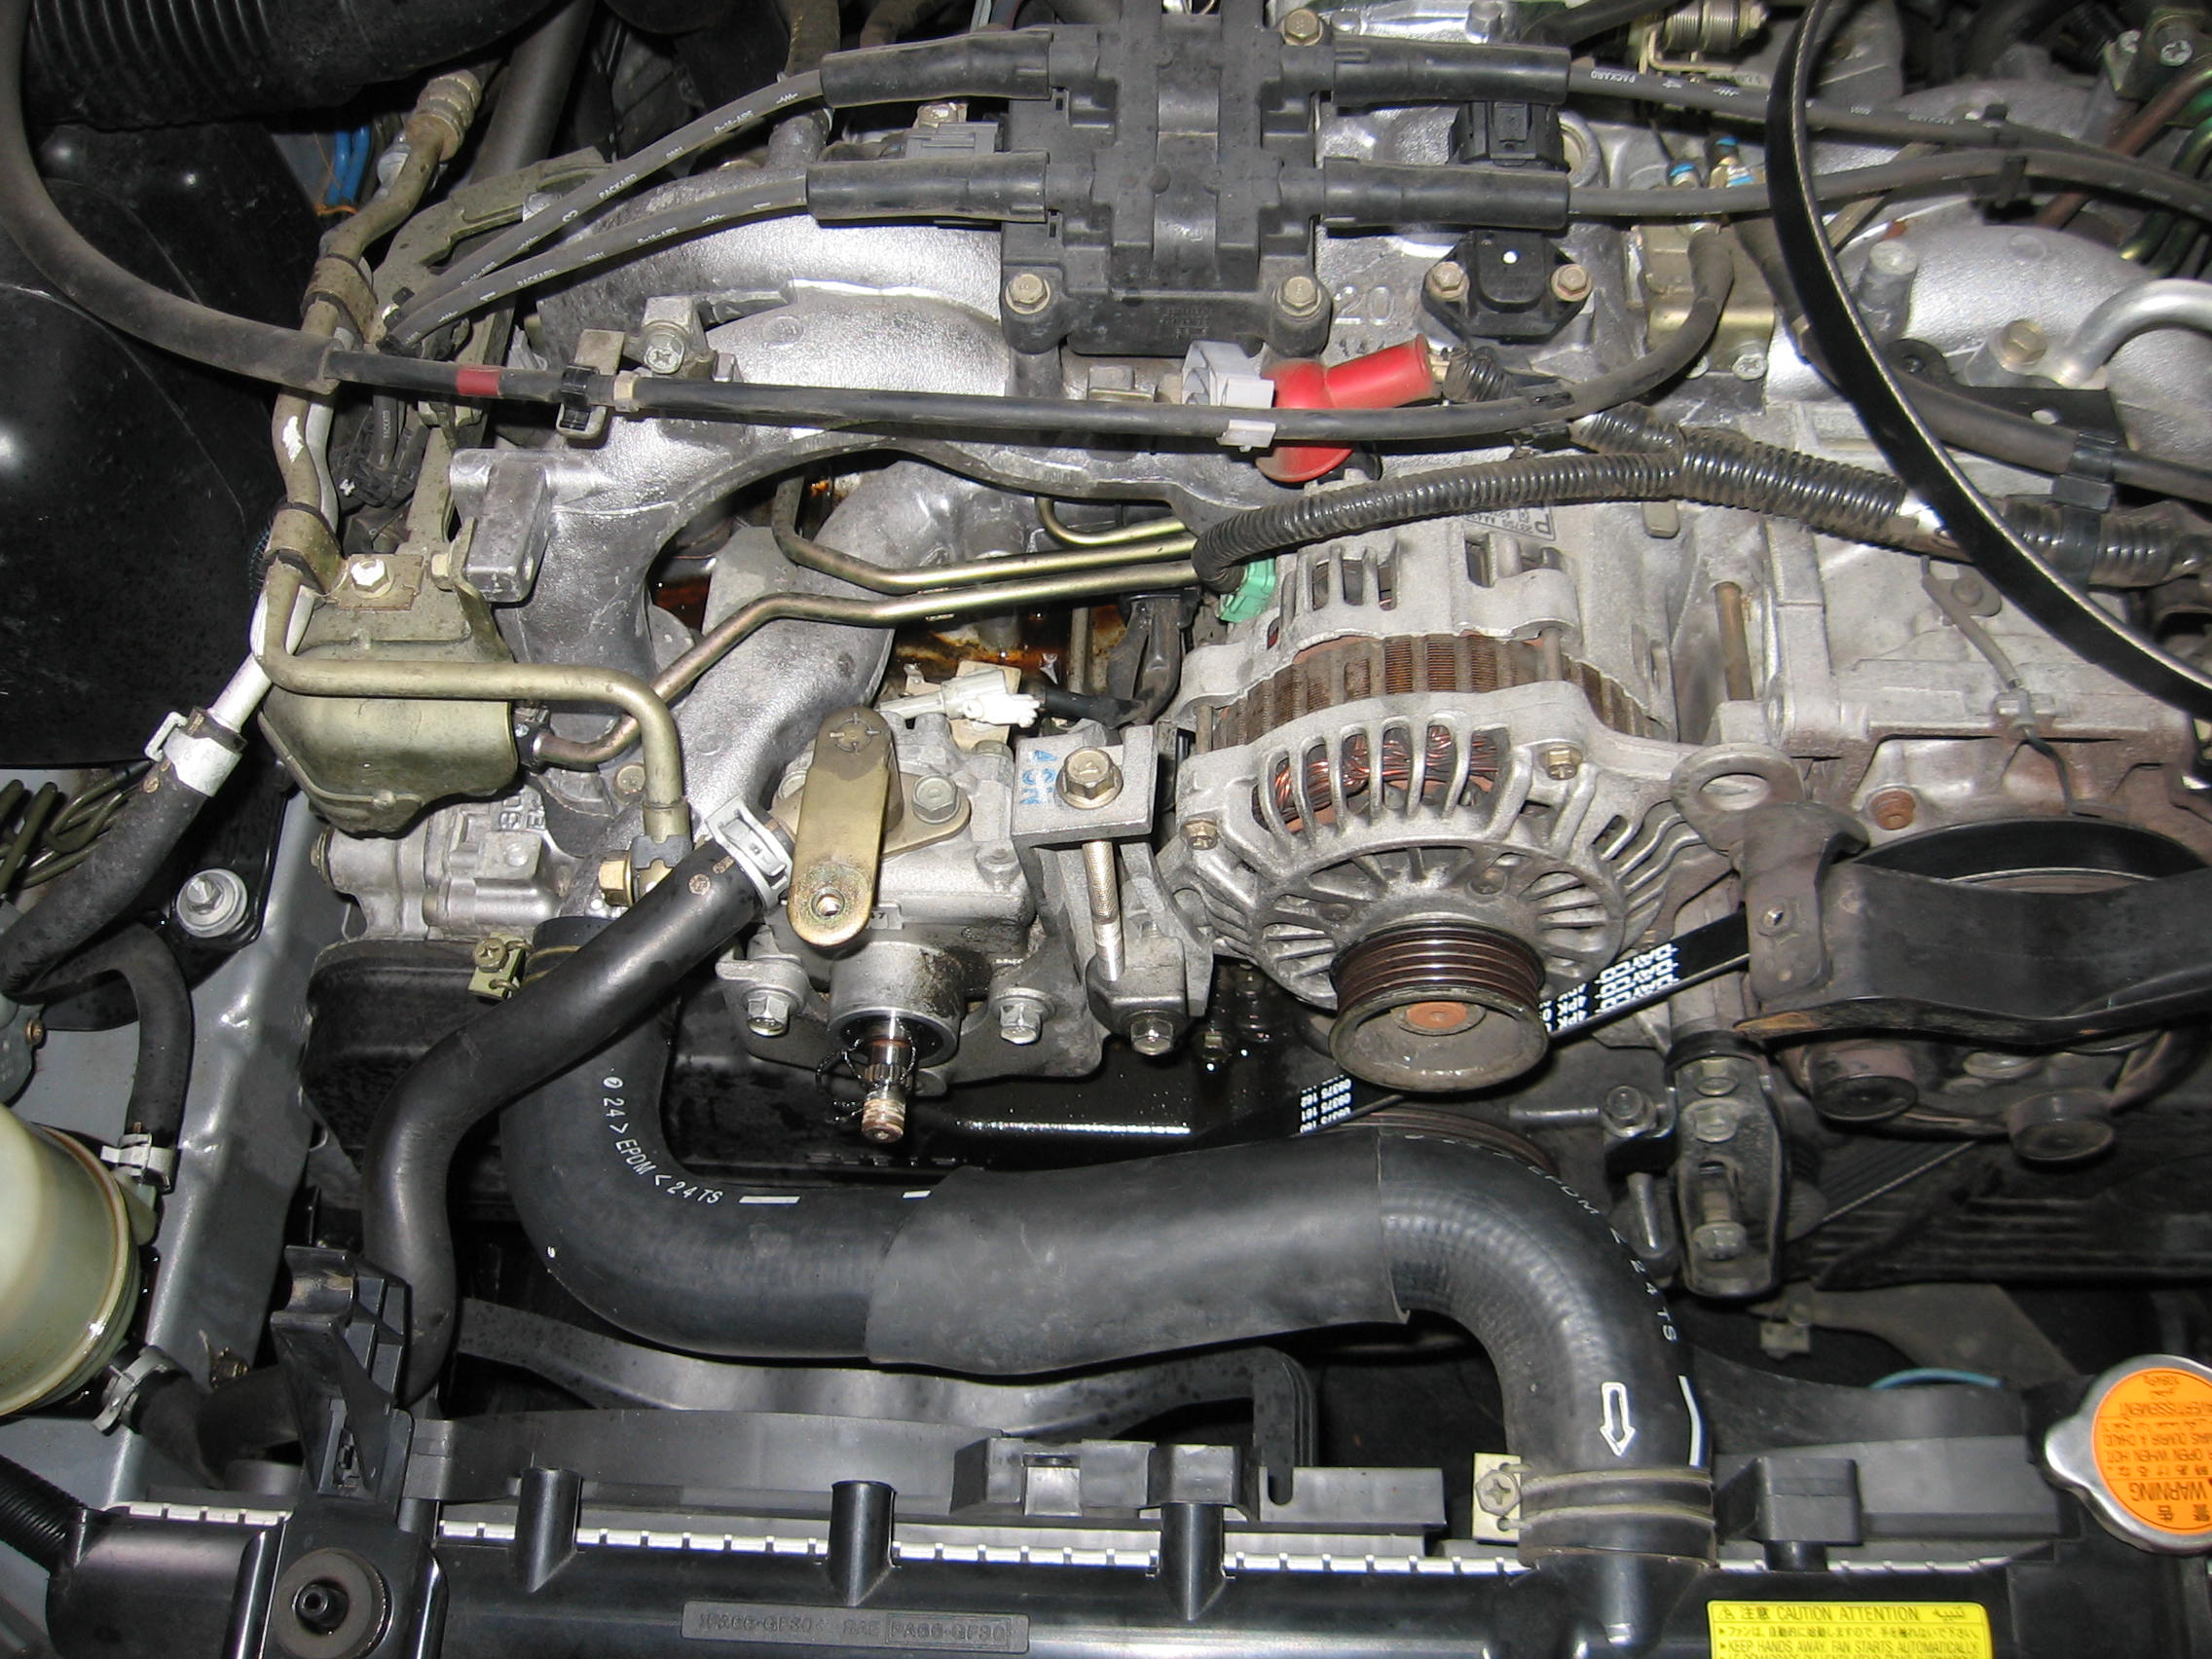 Hummer moreover Gm 5 3 Engine Cylinder Head additionally Search in addition Subaru Impreza as well Monthly Contest Winner September 2014. on h3 hummer diagram